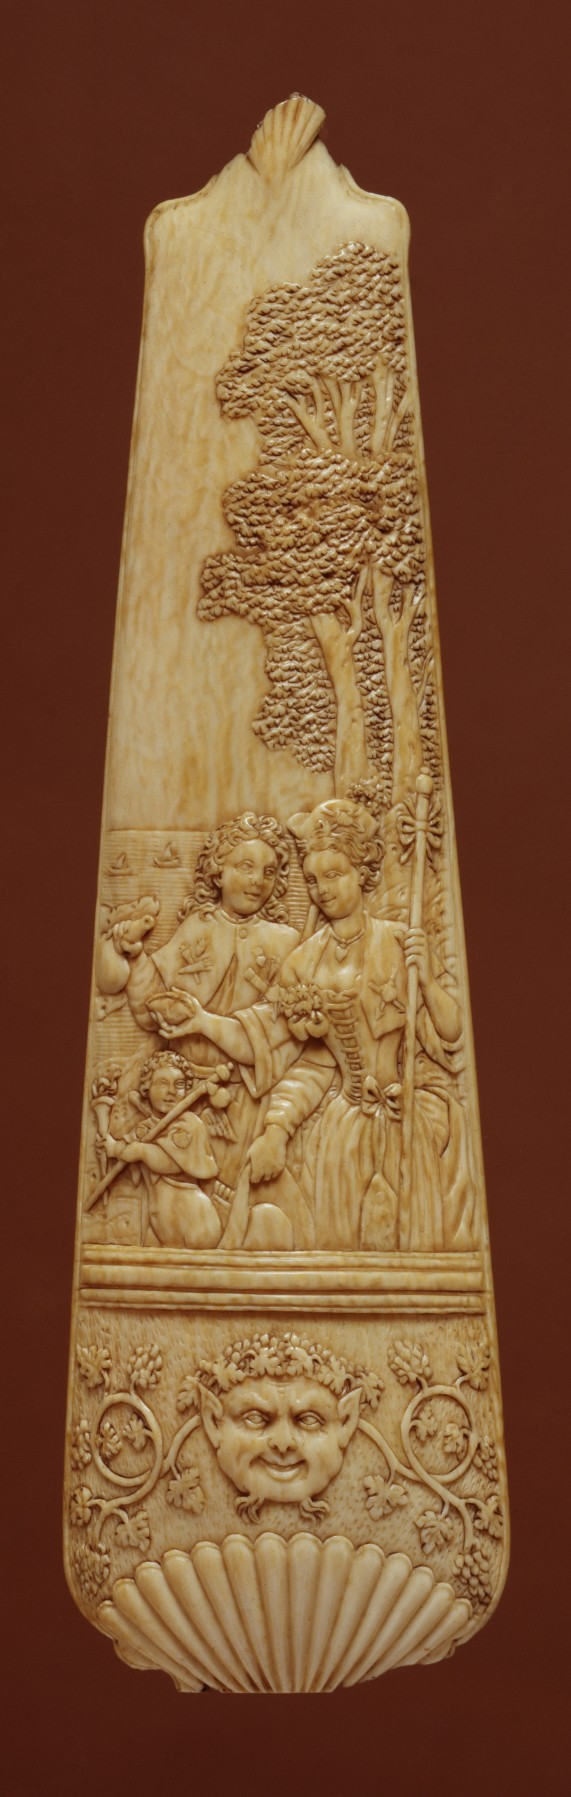 Tobacco Grater with Pilgrims of Cythera